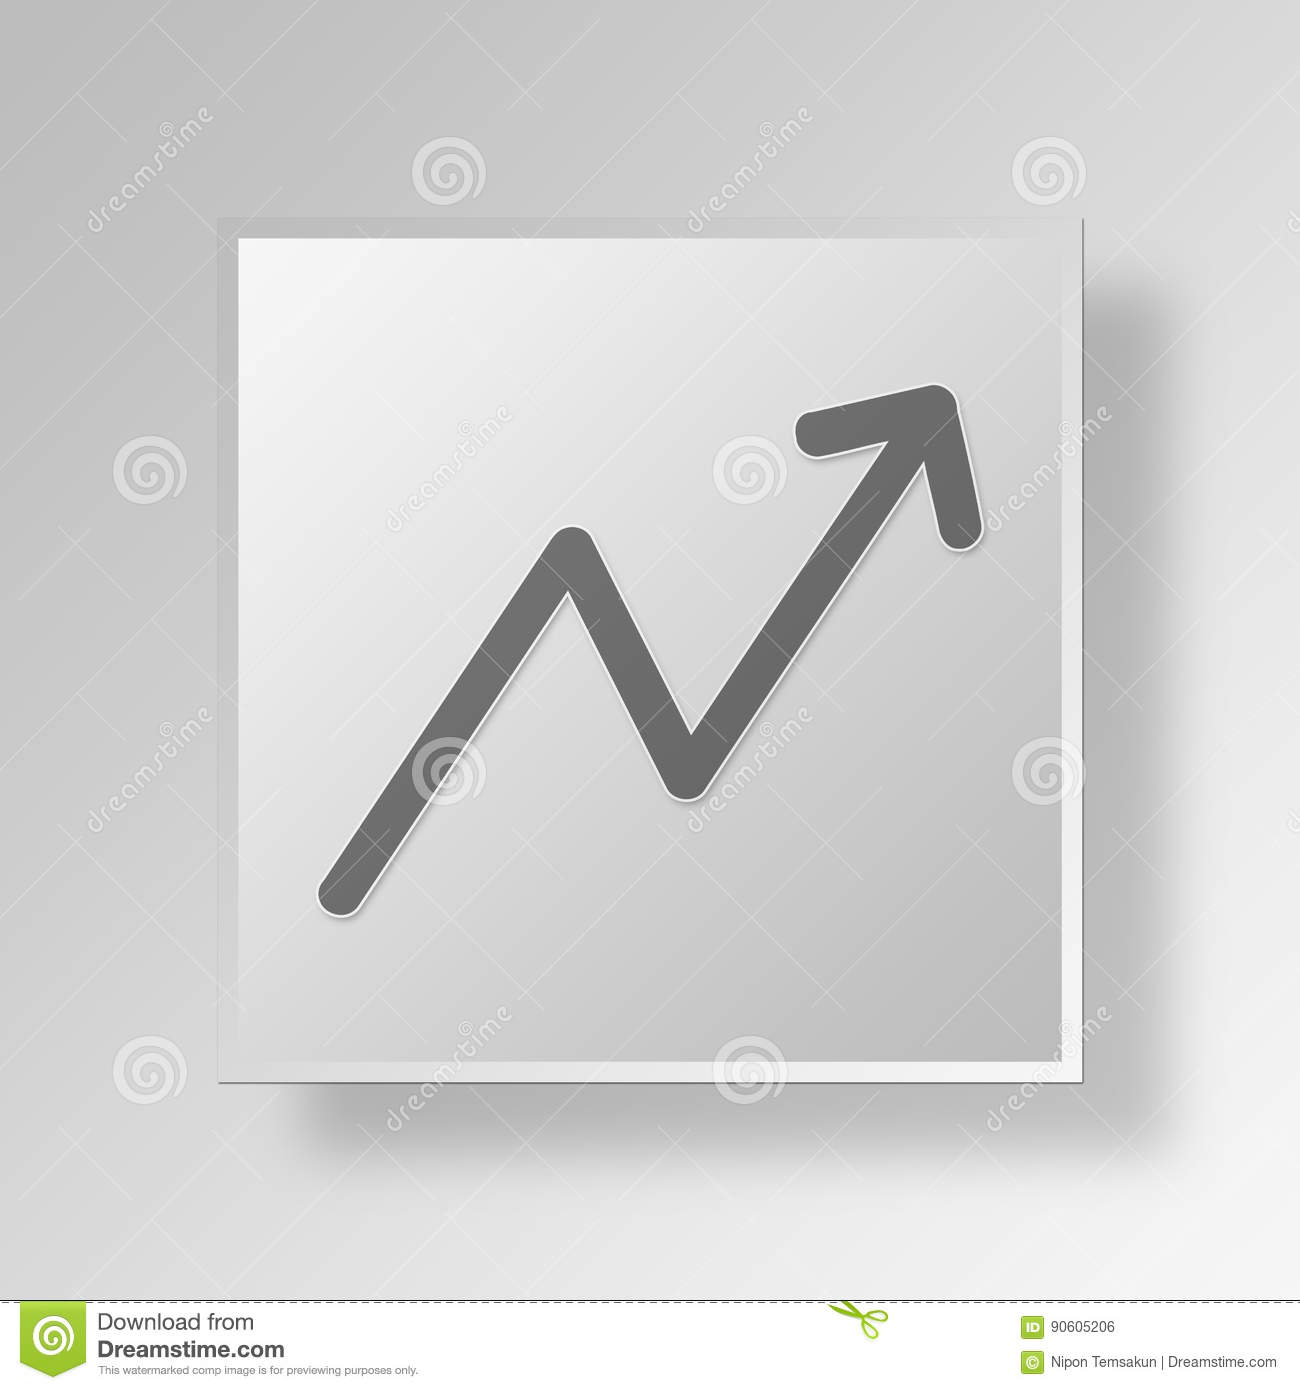 3d line graph icon business concept stock illustration